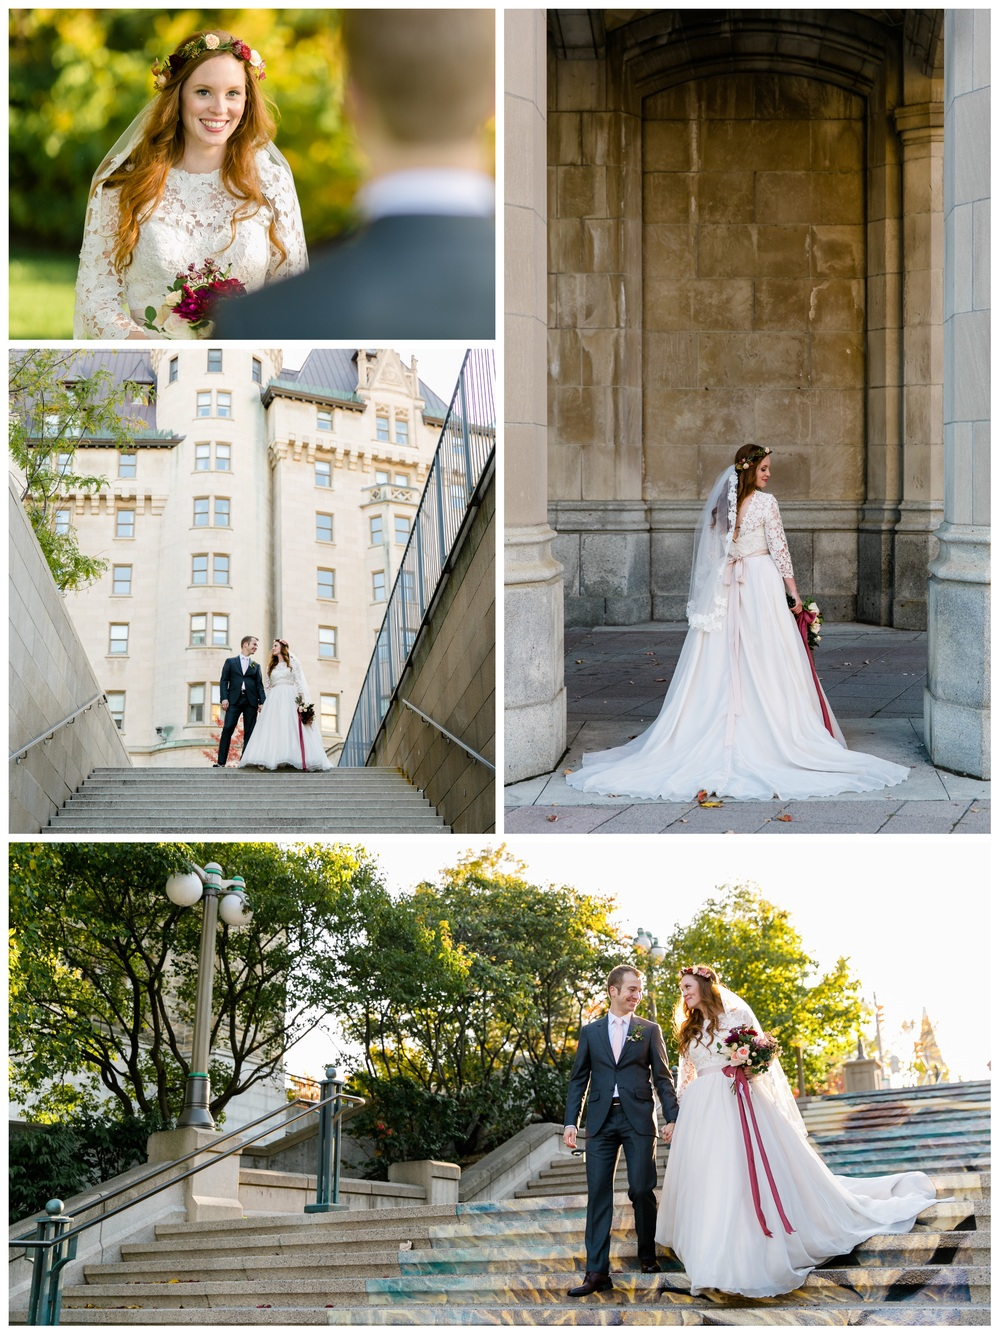 Photographs of a newly married couple outside the chateau laurier in ottawa